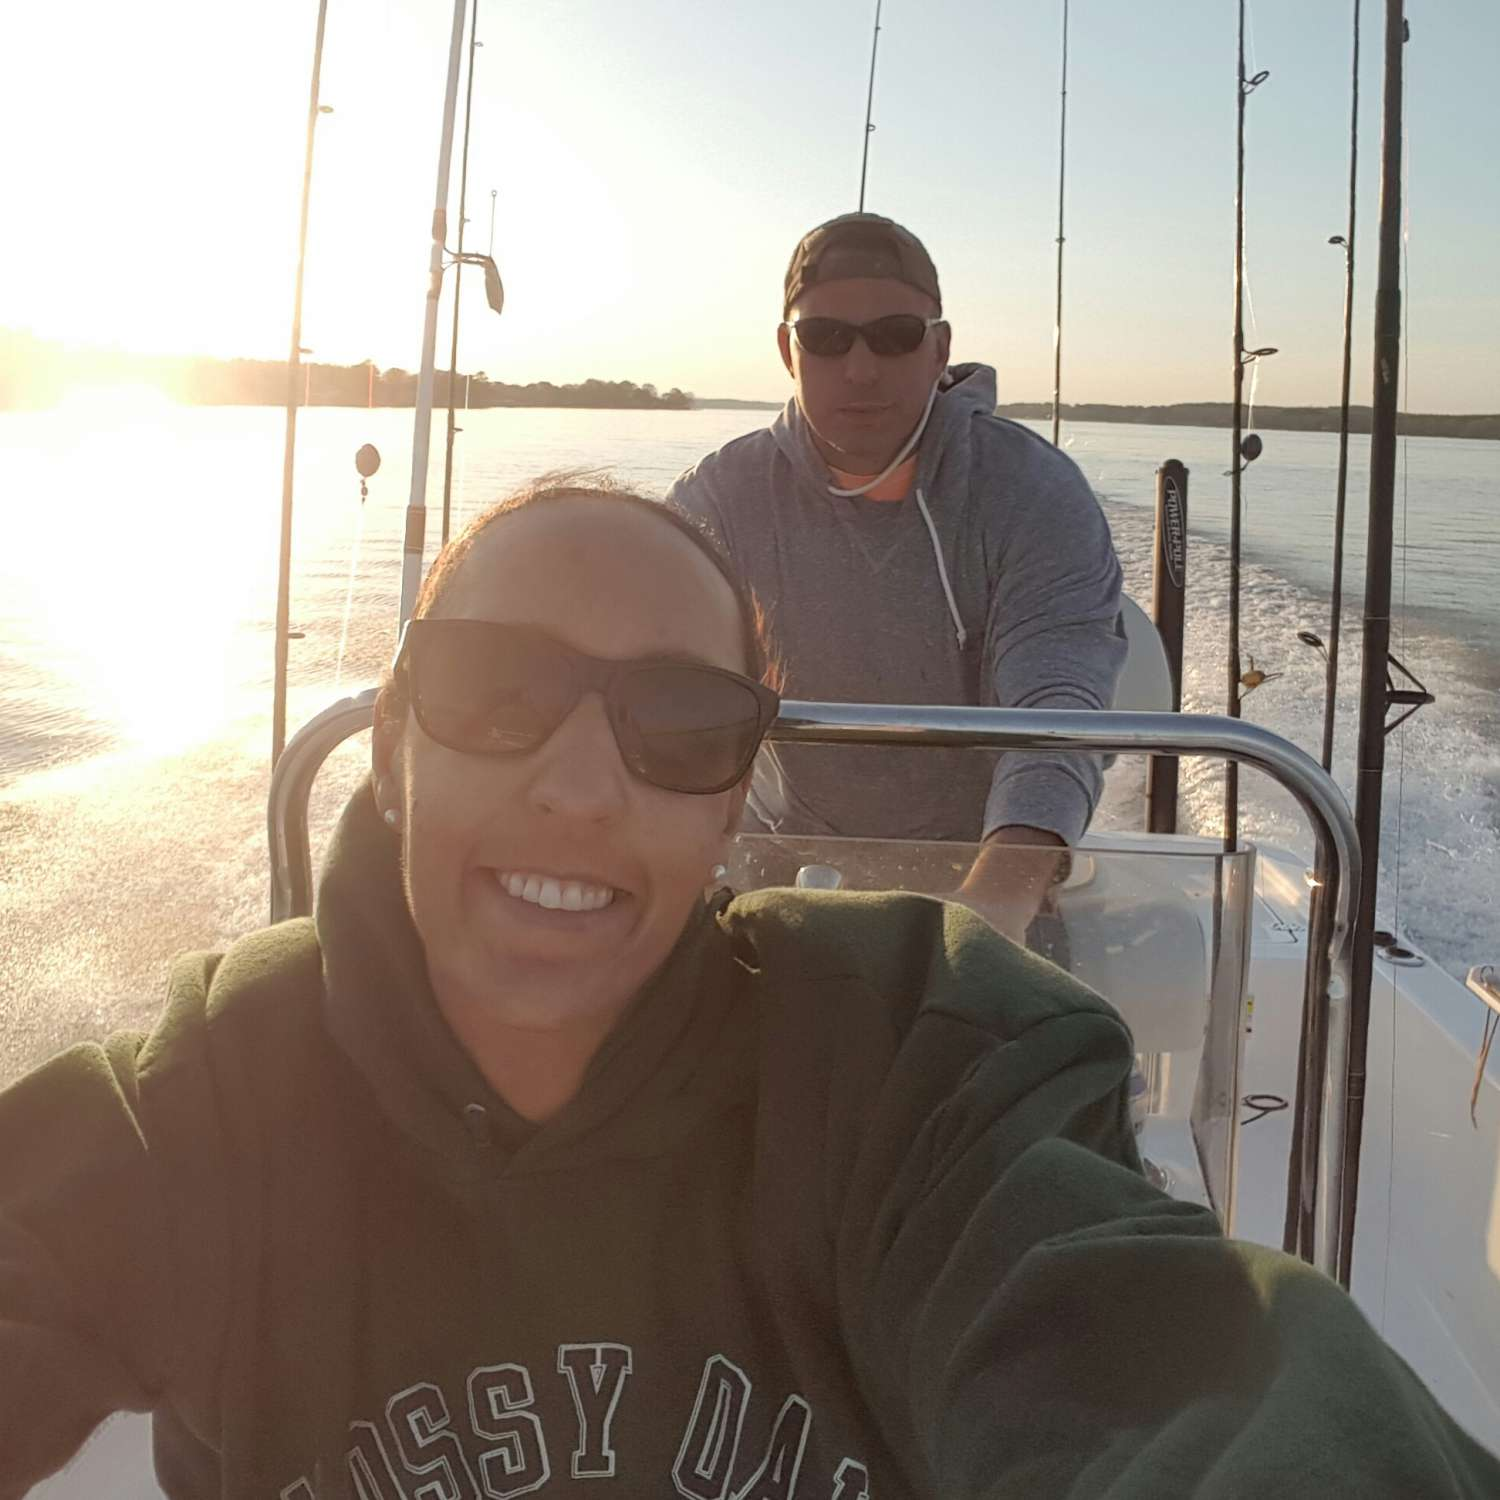 Title: Life Is Good Today - On board their Sportsman Island Bay 20 Bay Boat - Location: Camden, South Carolina. Participating in the Photo Contest #SportsmanMarch2017